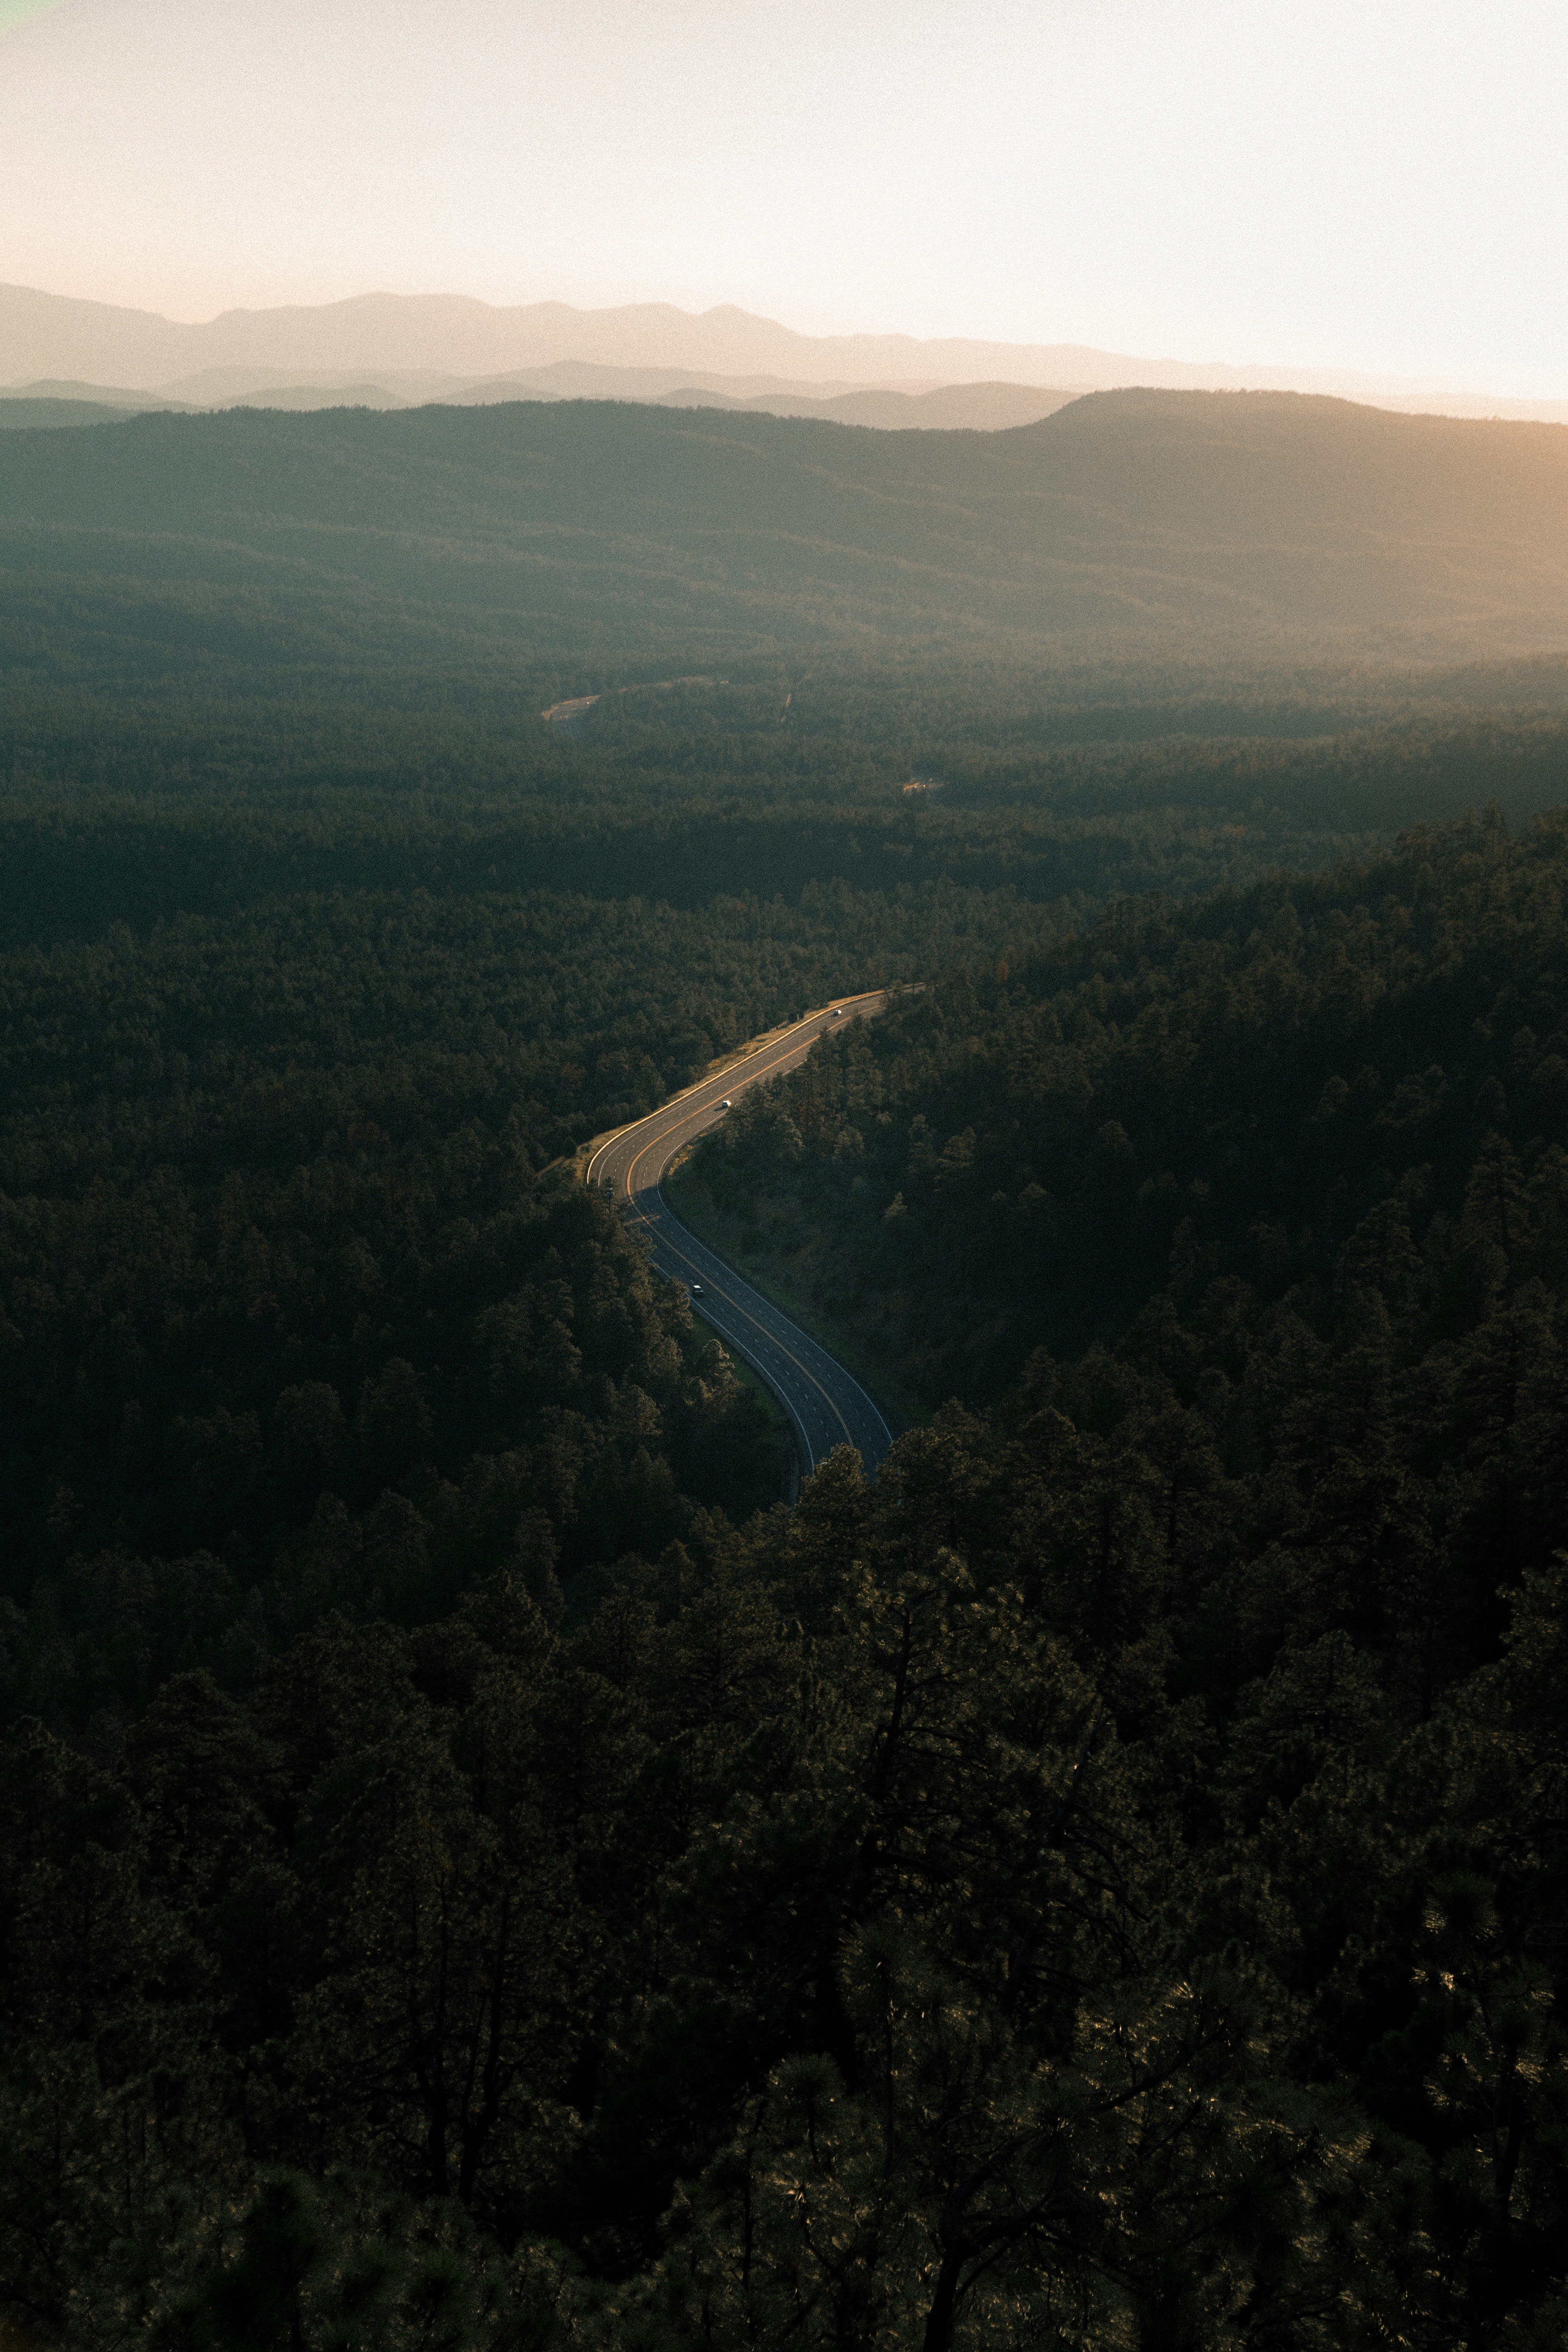 149469 free wallpaper 480x800 for phone, download images Nature, Trees, View From Above, Road, Forest, Height 480x800 for mobile